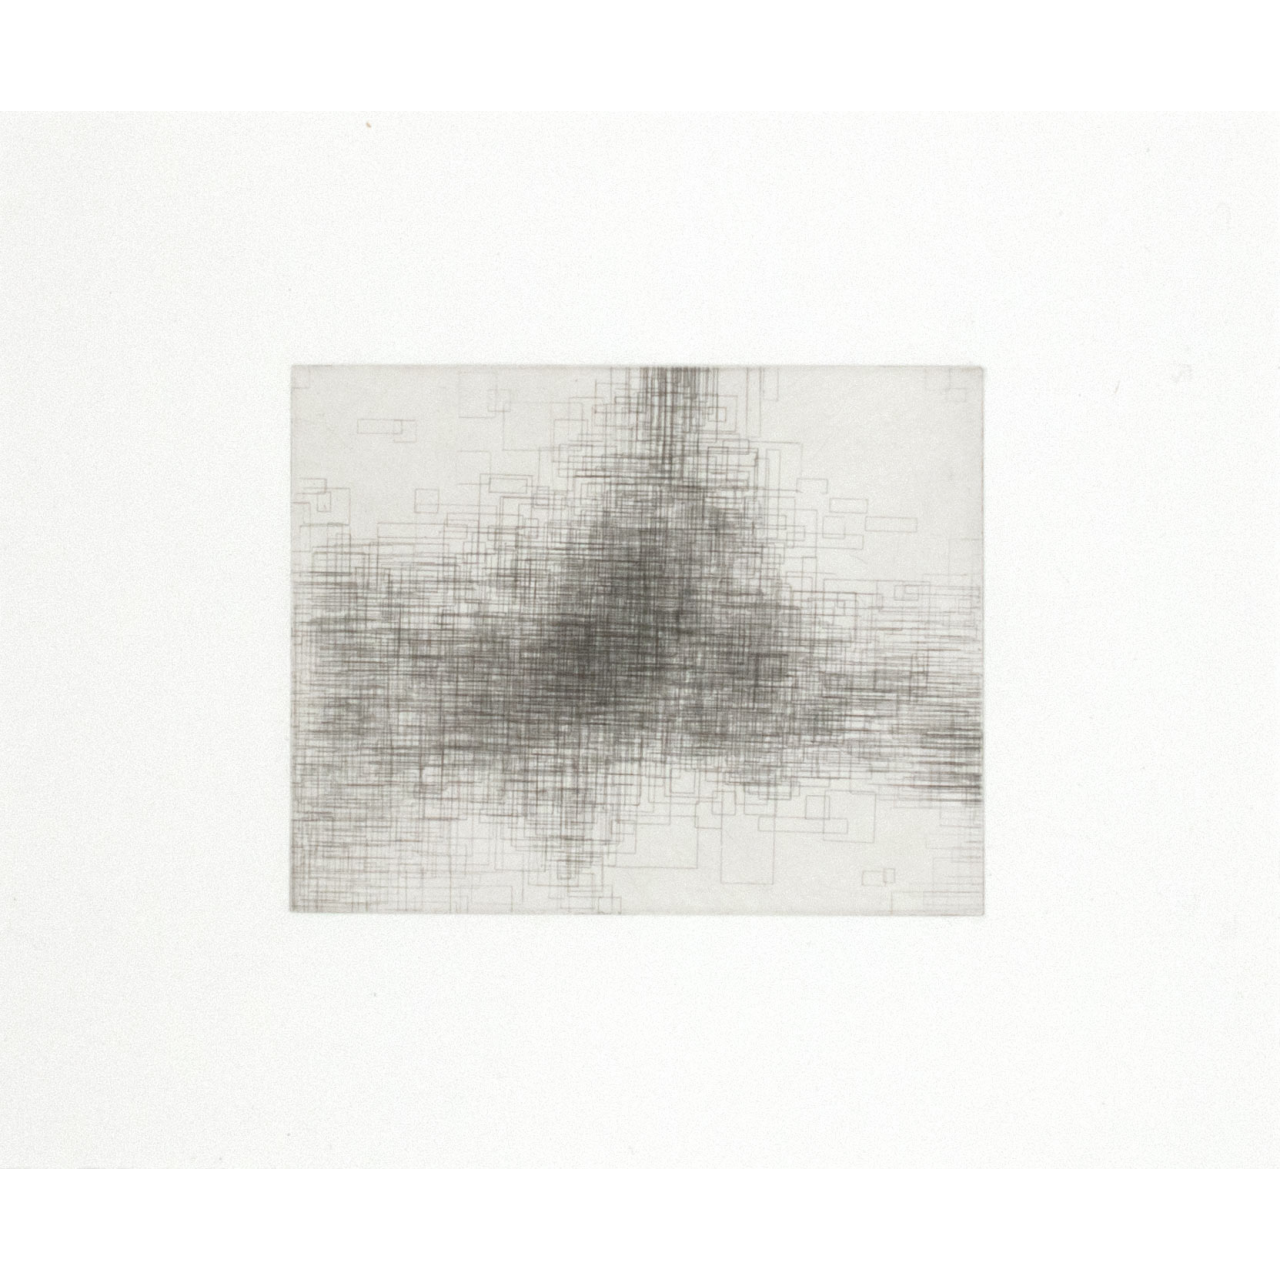 untitled/6549 rectangles